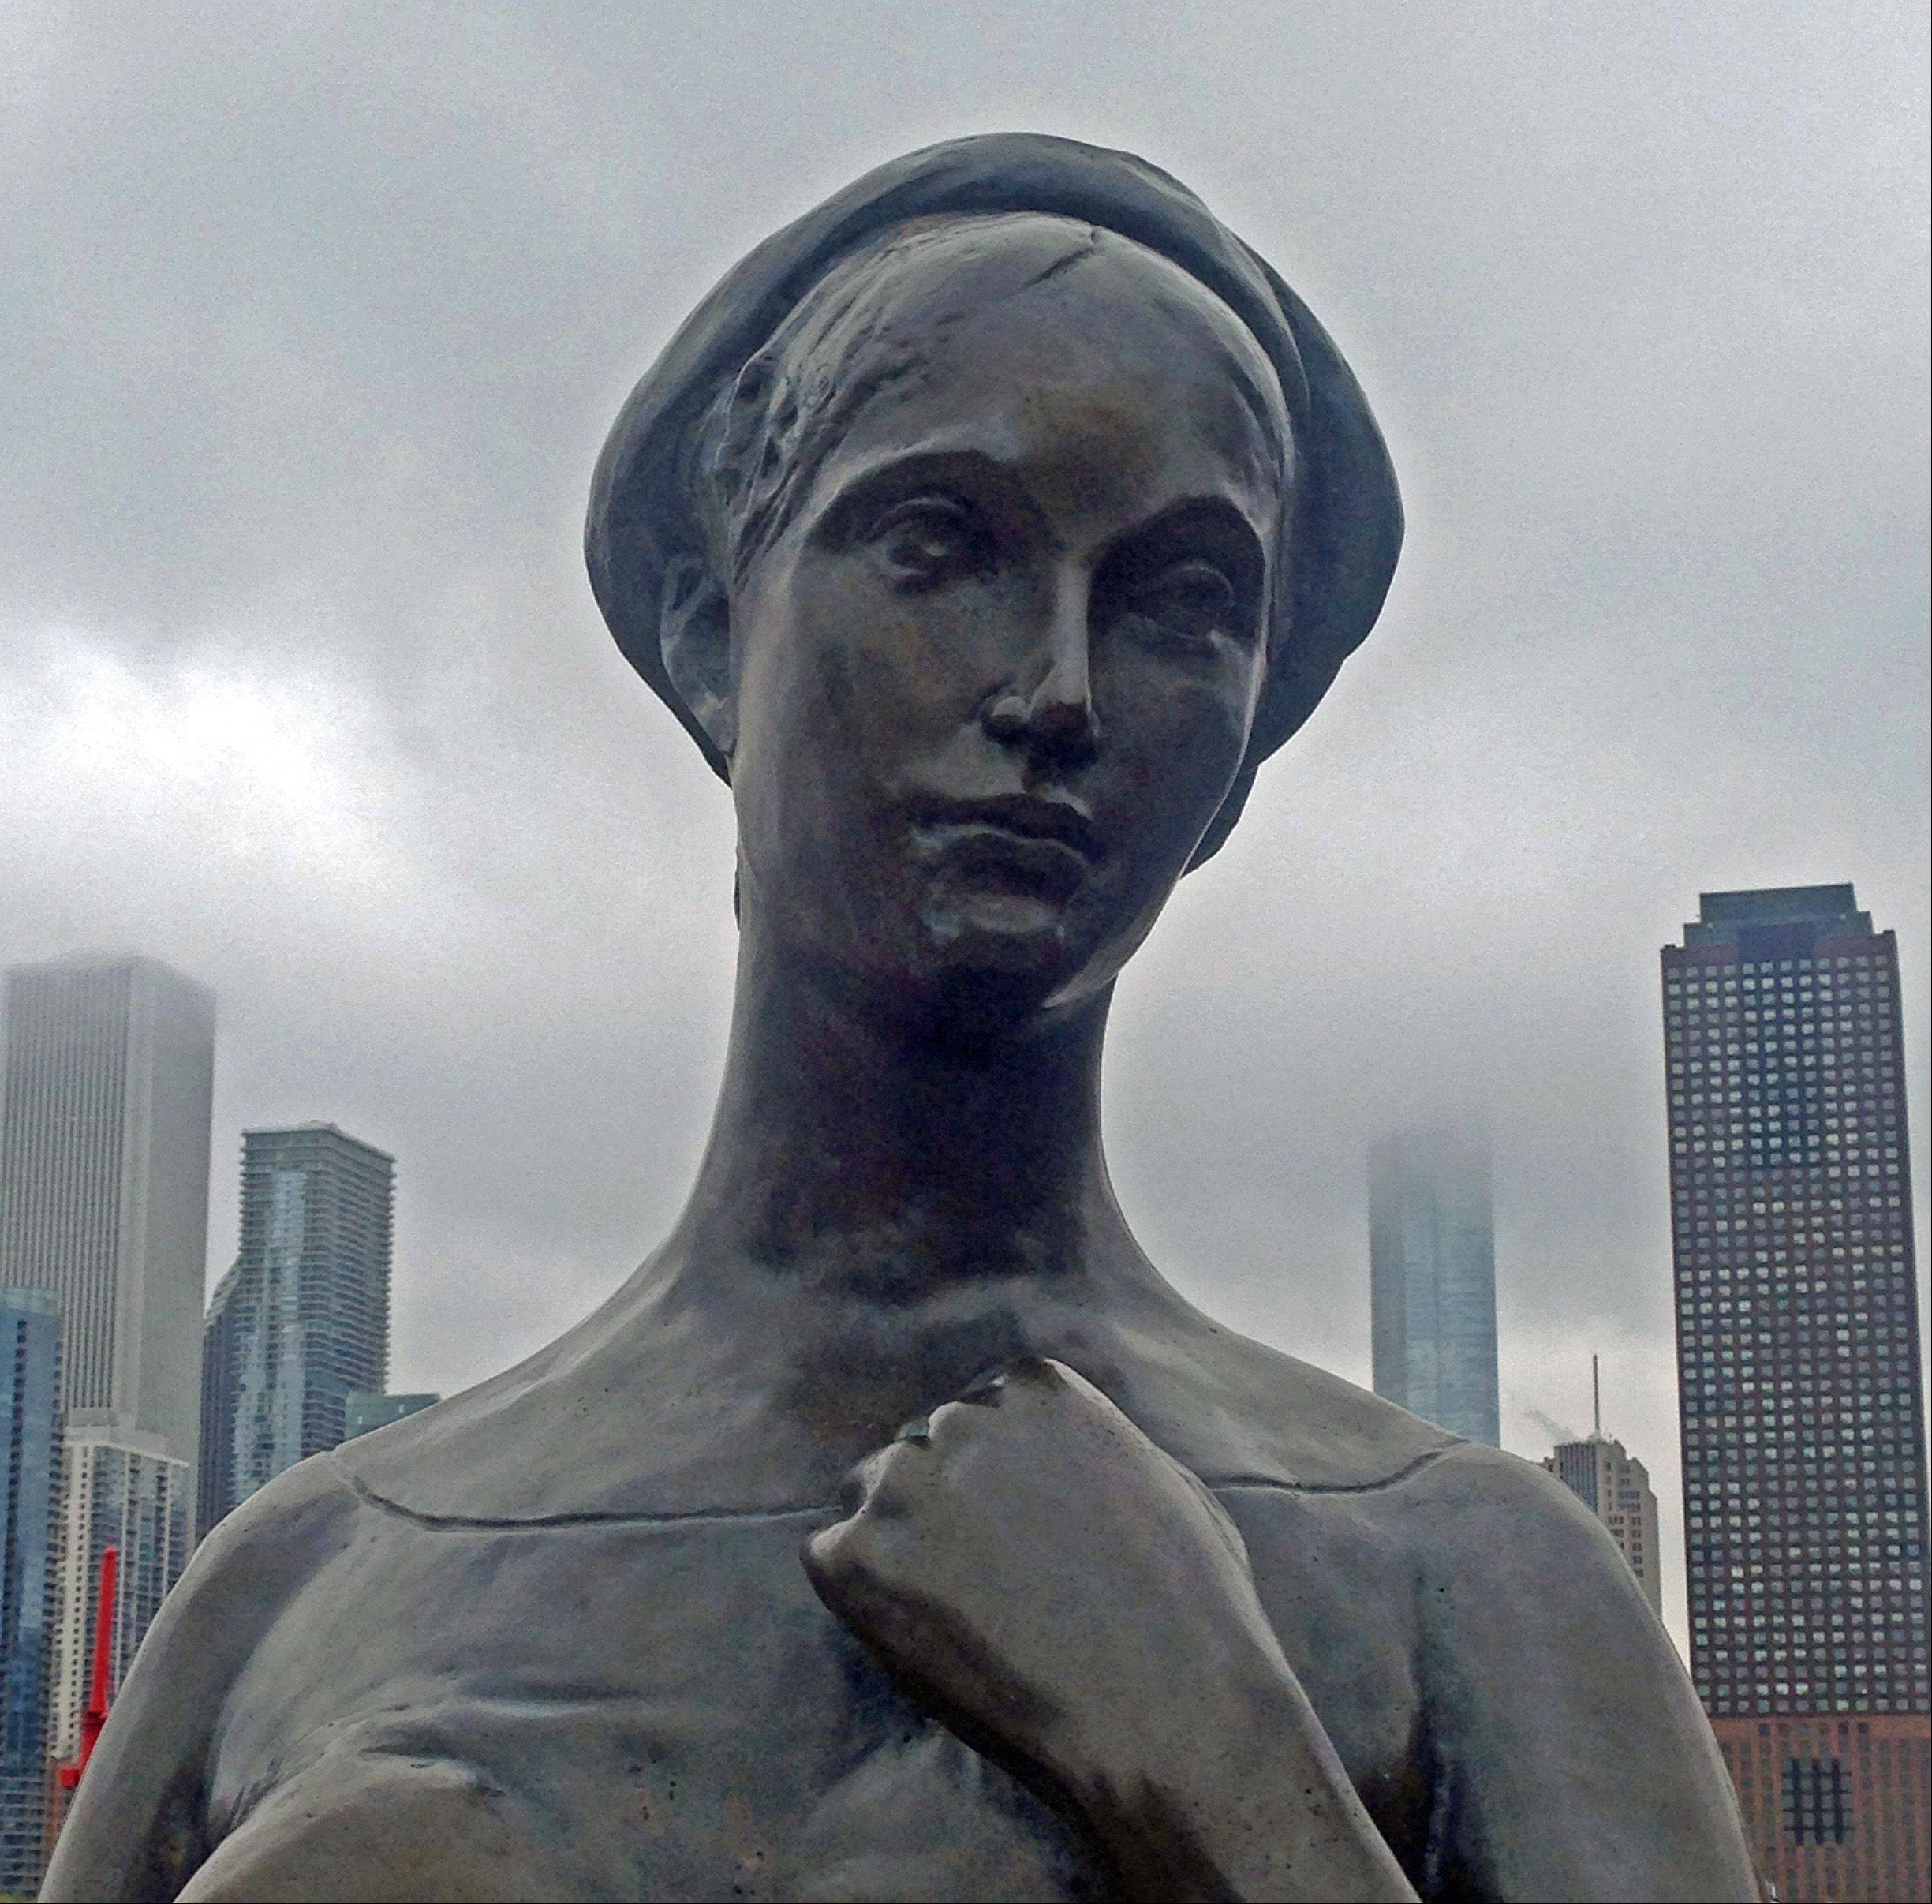 "Last week, I had a field trip to the Chicago Shakespeare Theatre at Navy Pier. I took this photo of the ""Juliet of Verona"" statue before the play started. The clouds provided a somewhat atmospheric effect."